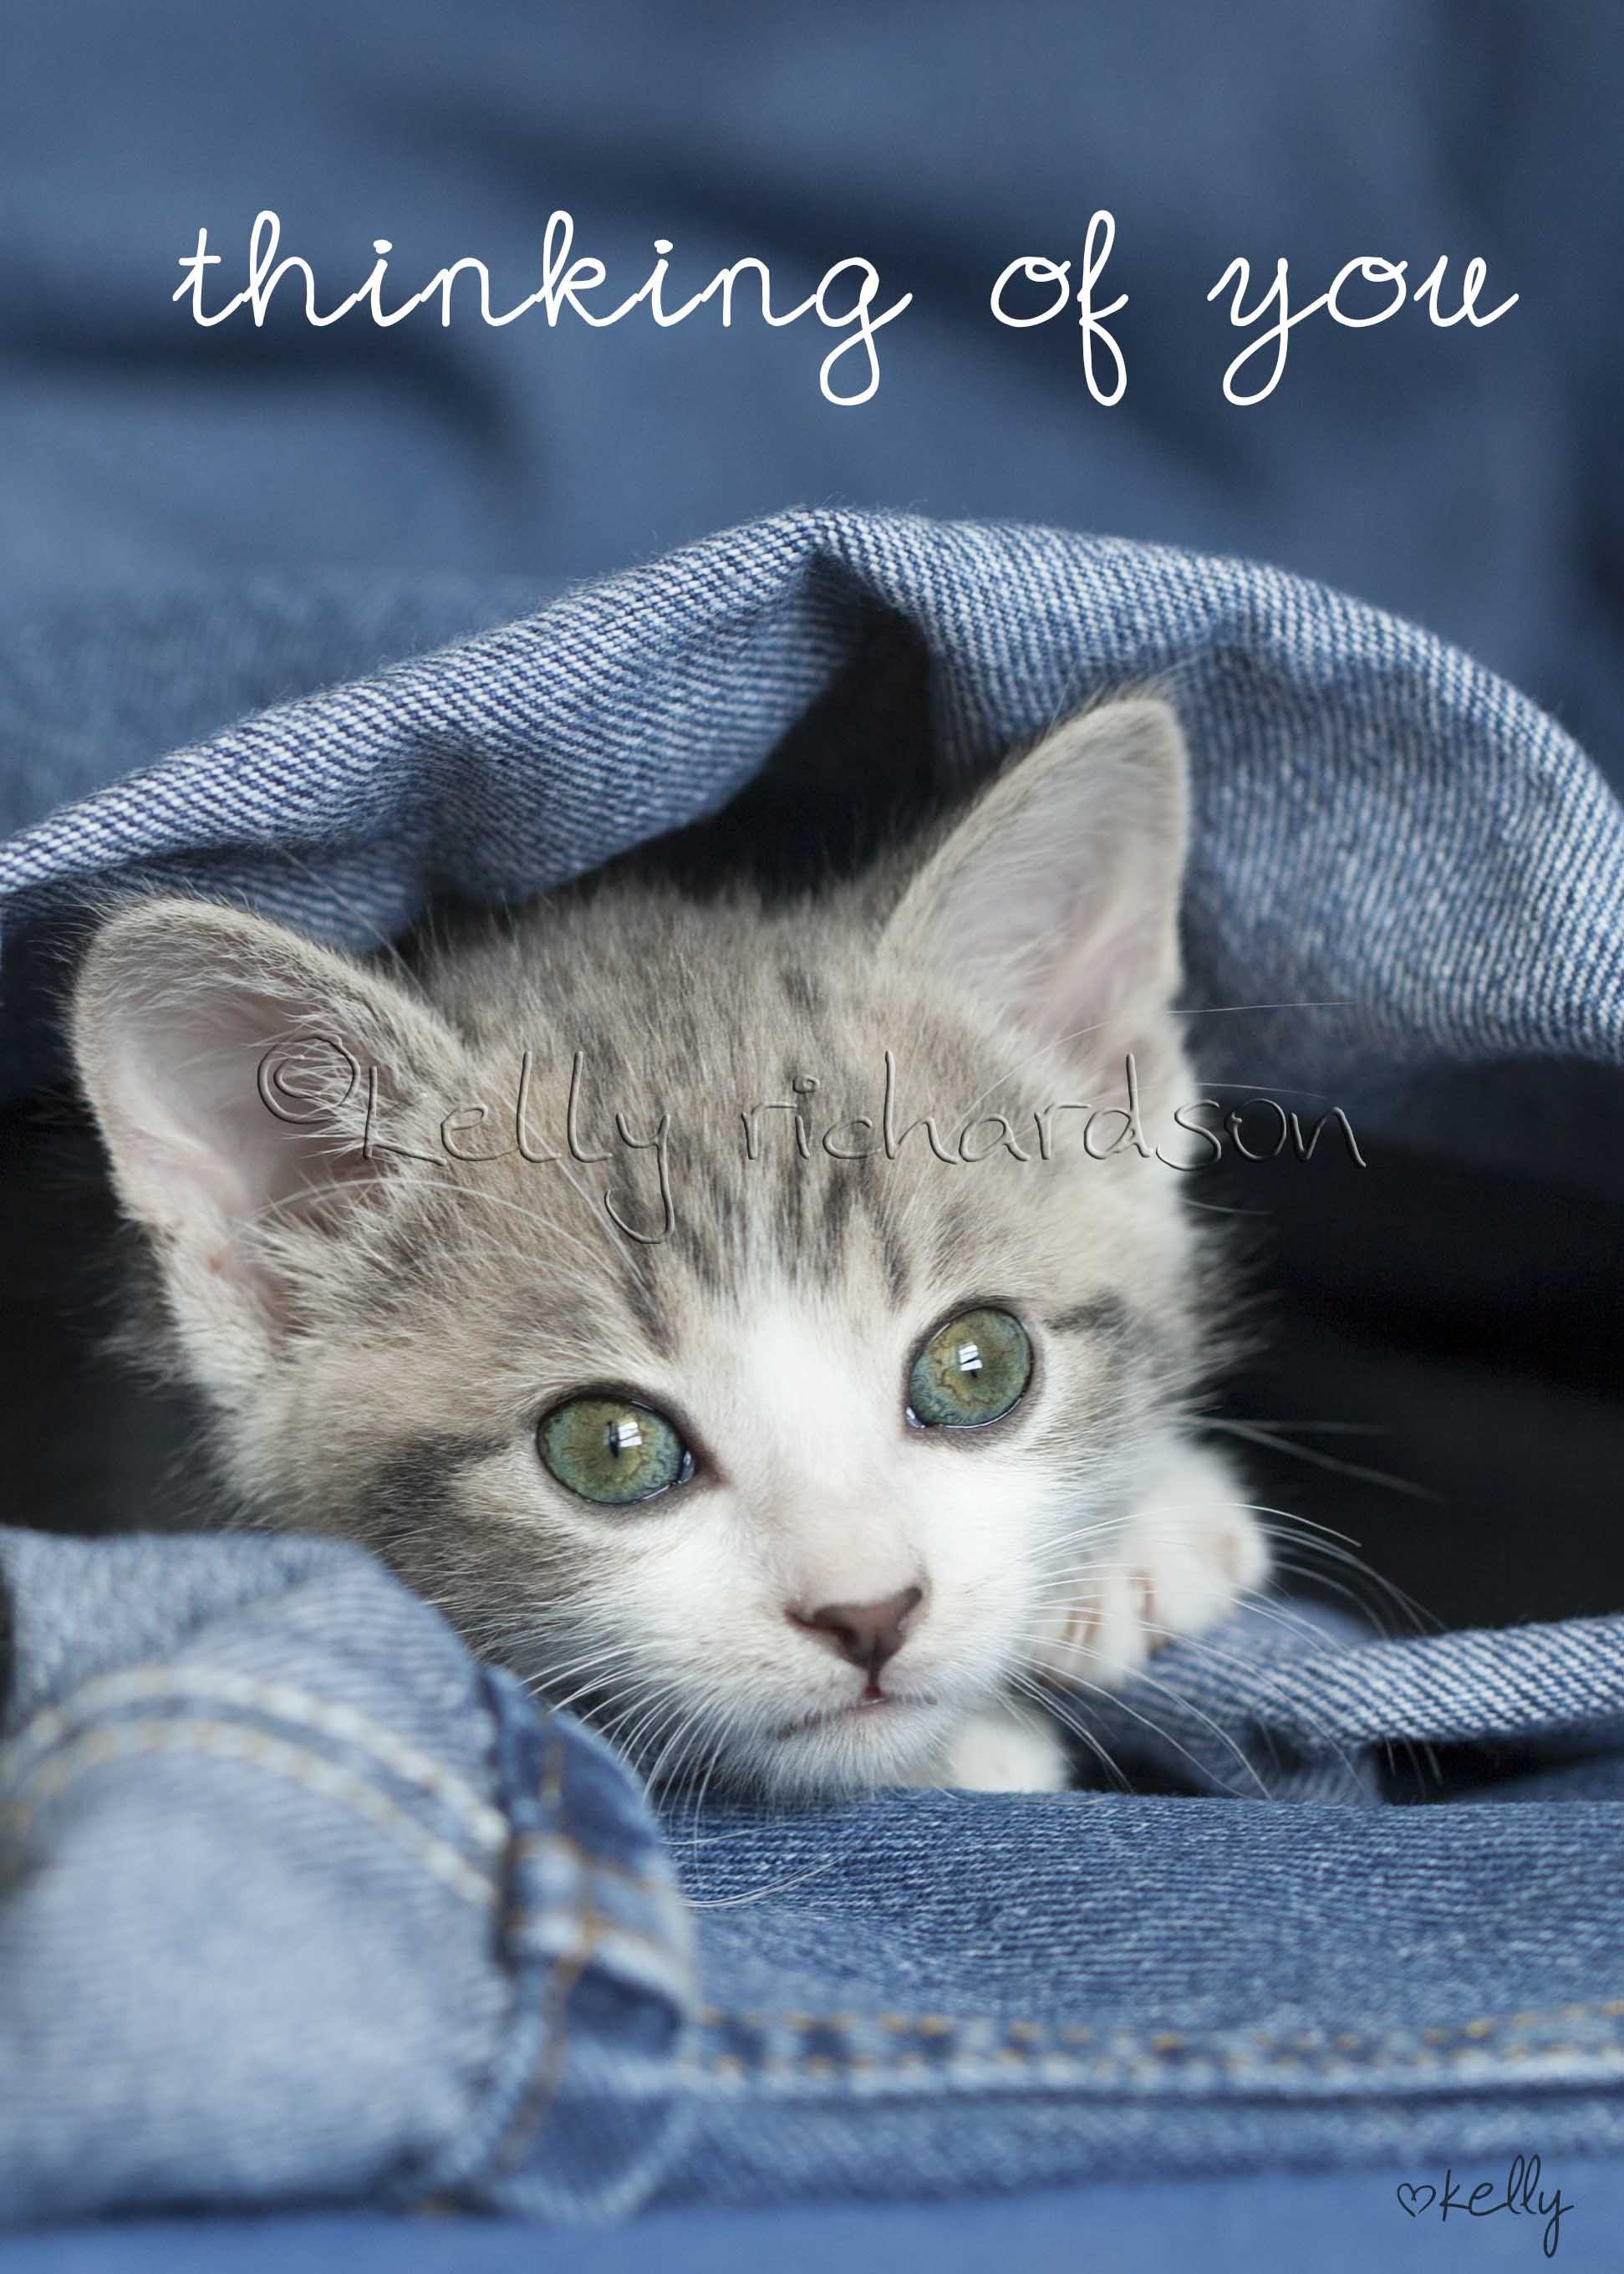 Pin by Kelly Richardson on Luvkelly Rescue Kittens | Pinterest